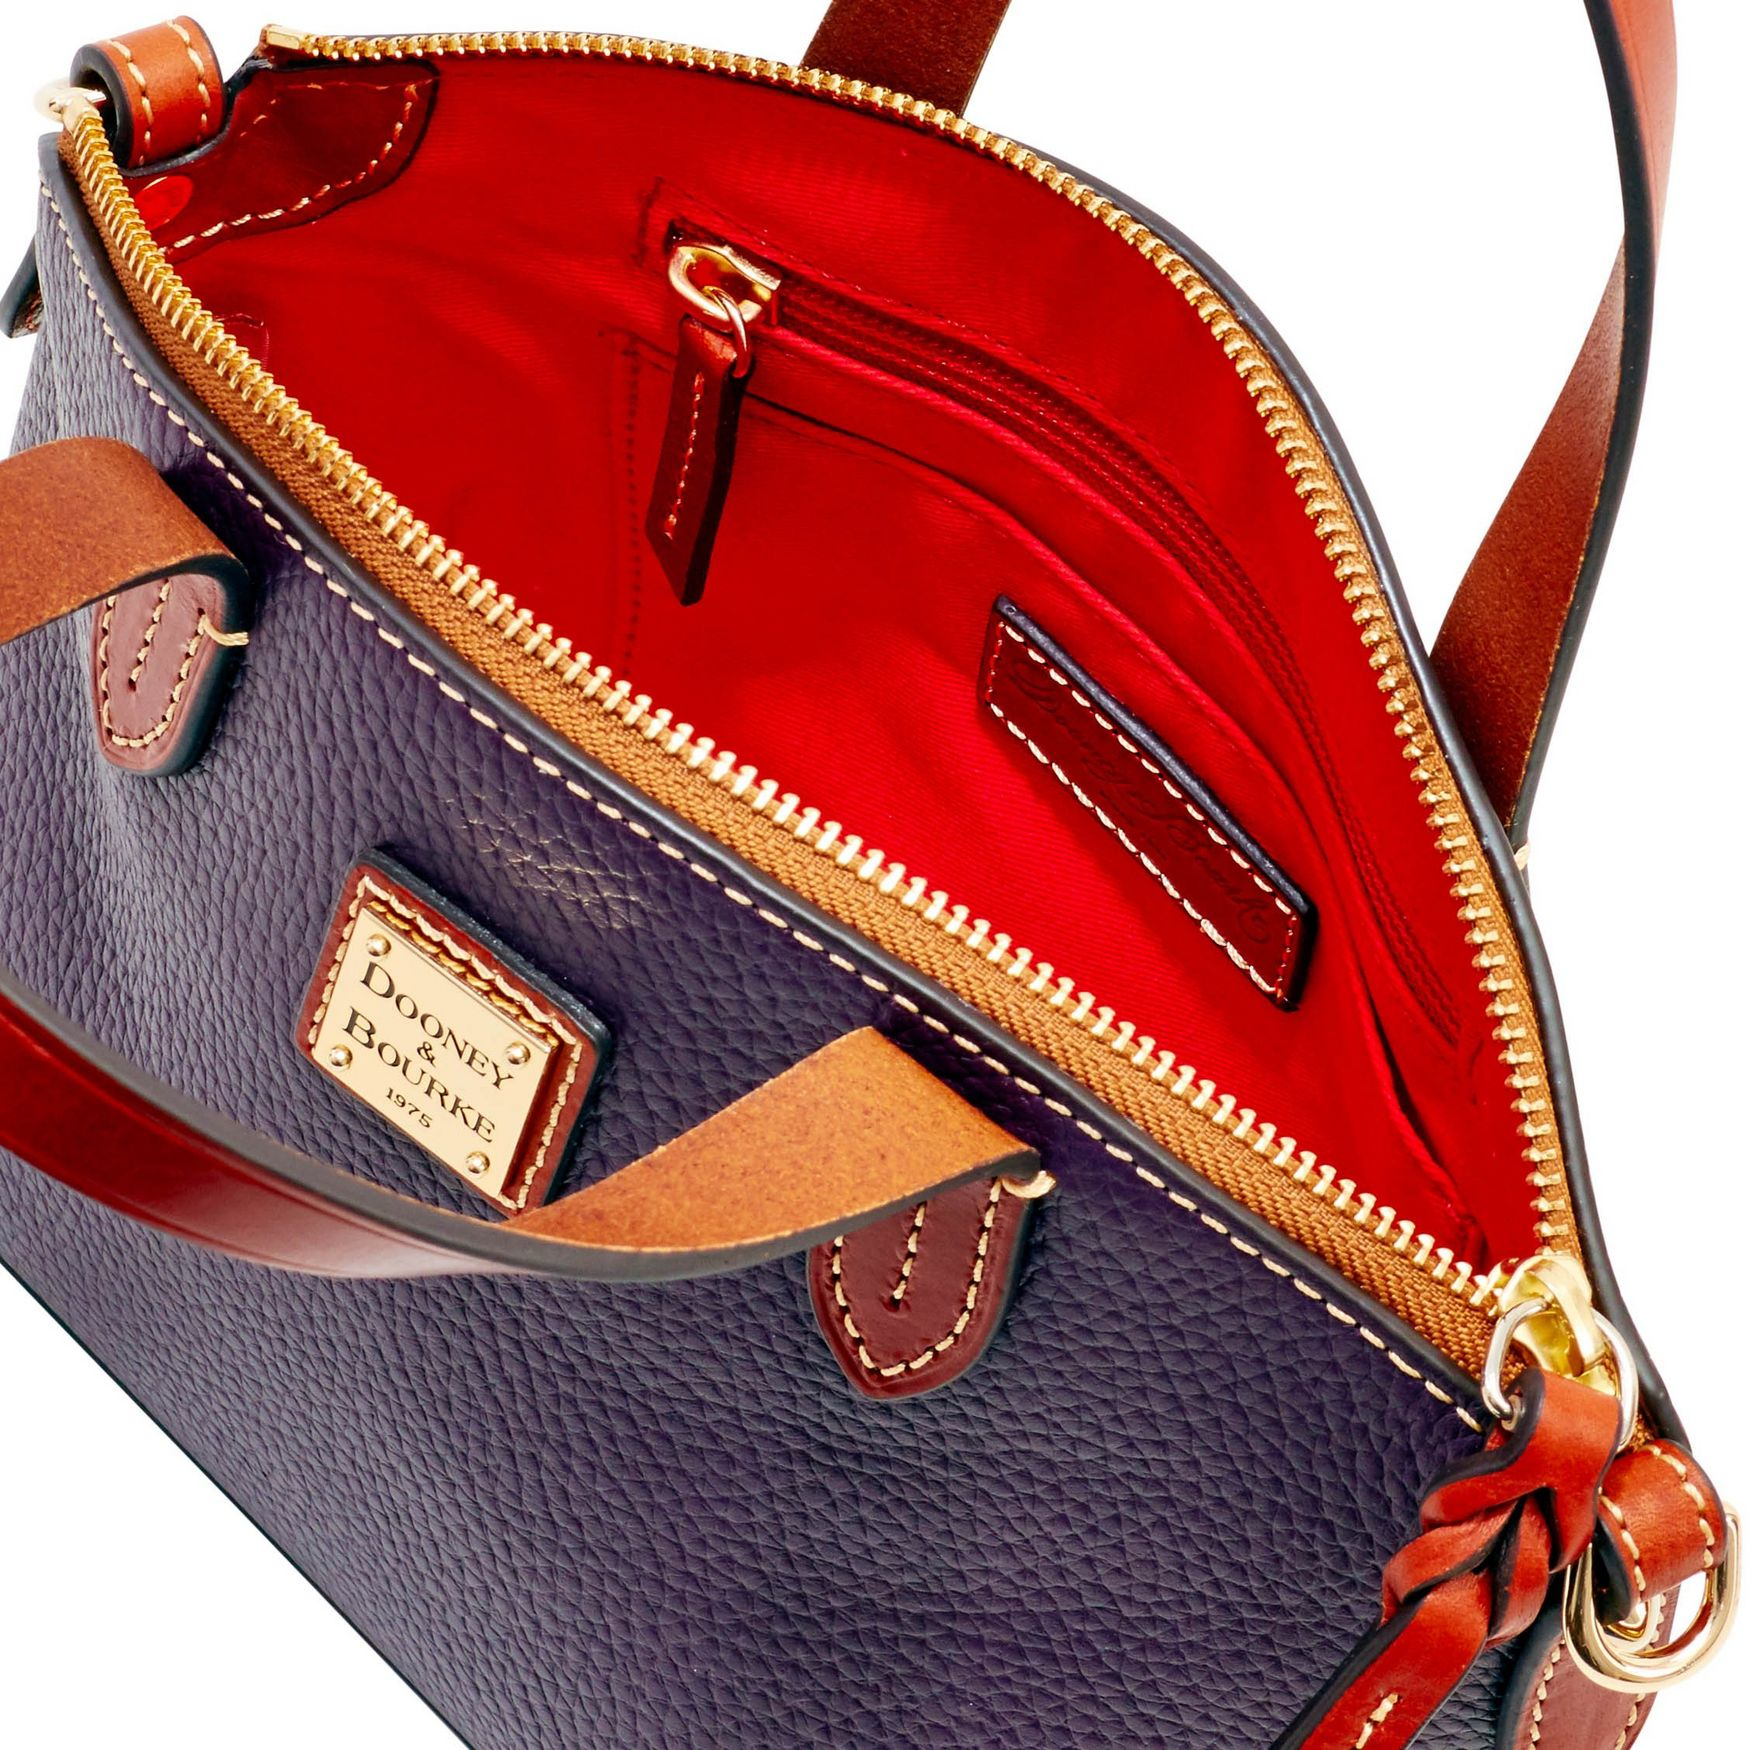 Dooney-amp-Bourke-Pebble-Grain-Ruby-Top-Handle-Bag thumbnail 54